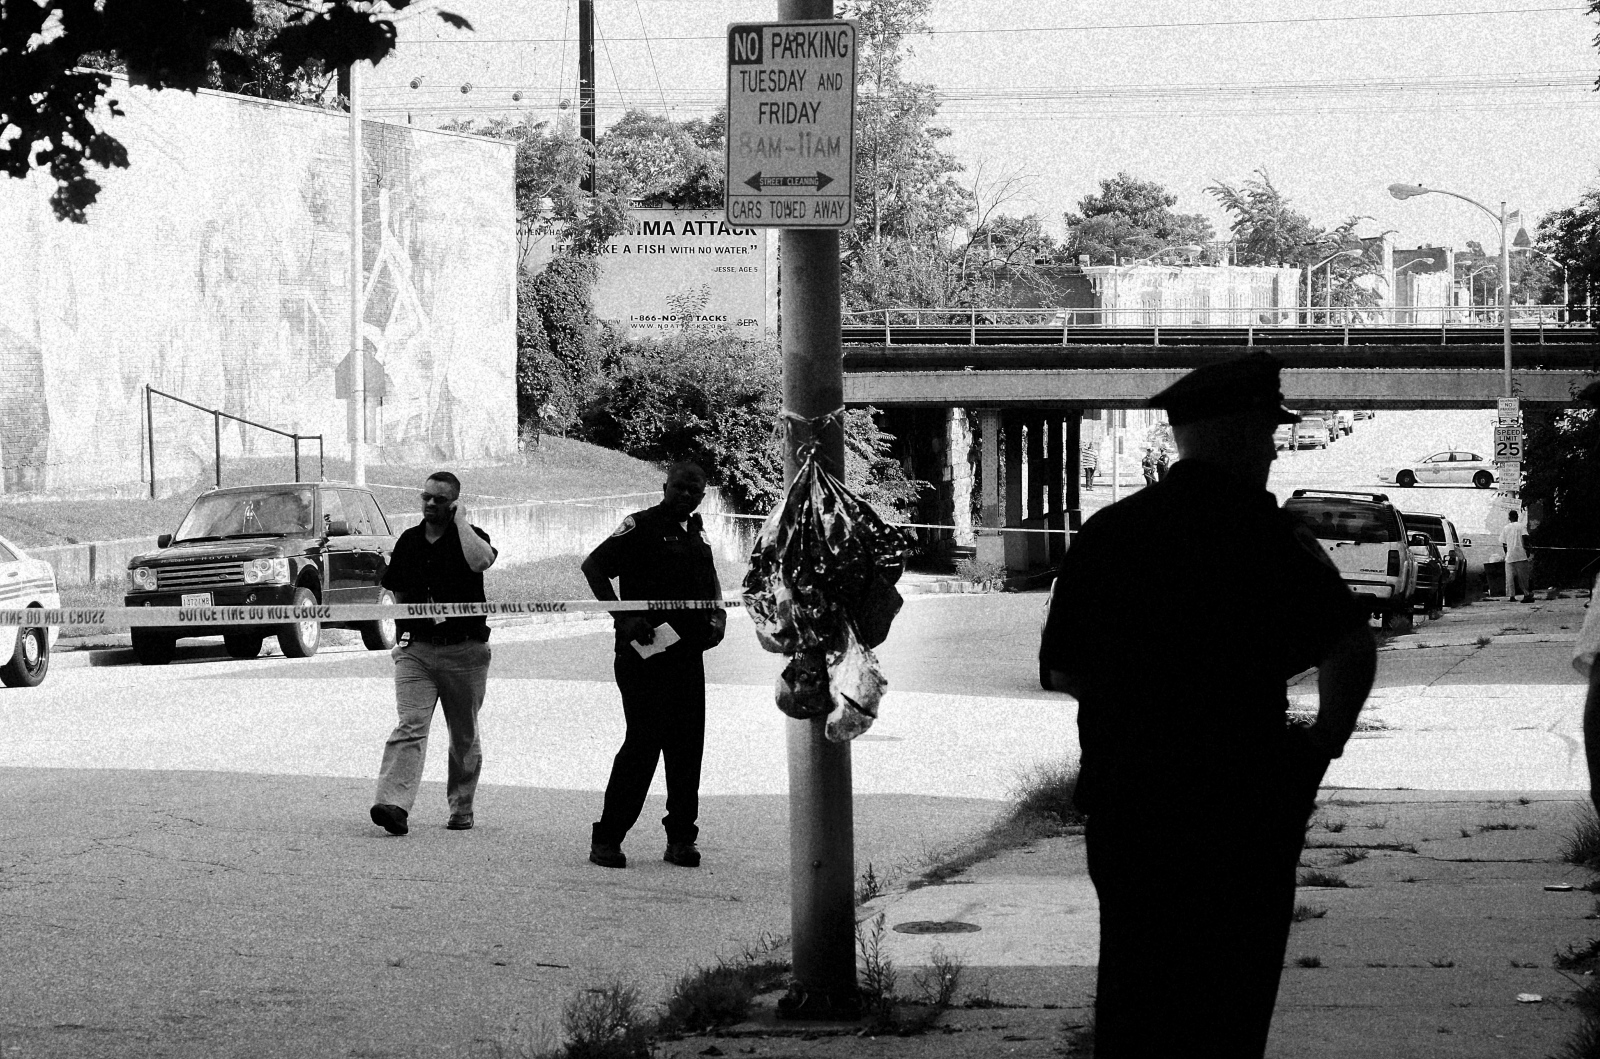 Police and detectives at a shooting scene in the 1000 block of Patterson Park Ave in E. Baltimore on July 22, 2013. The balloons are a memorial to another homicide that occurred there a month earlier.